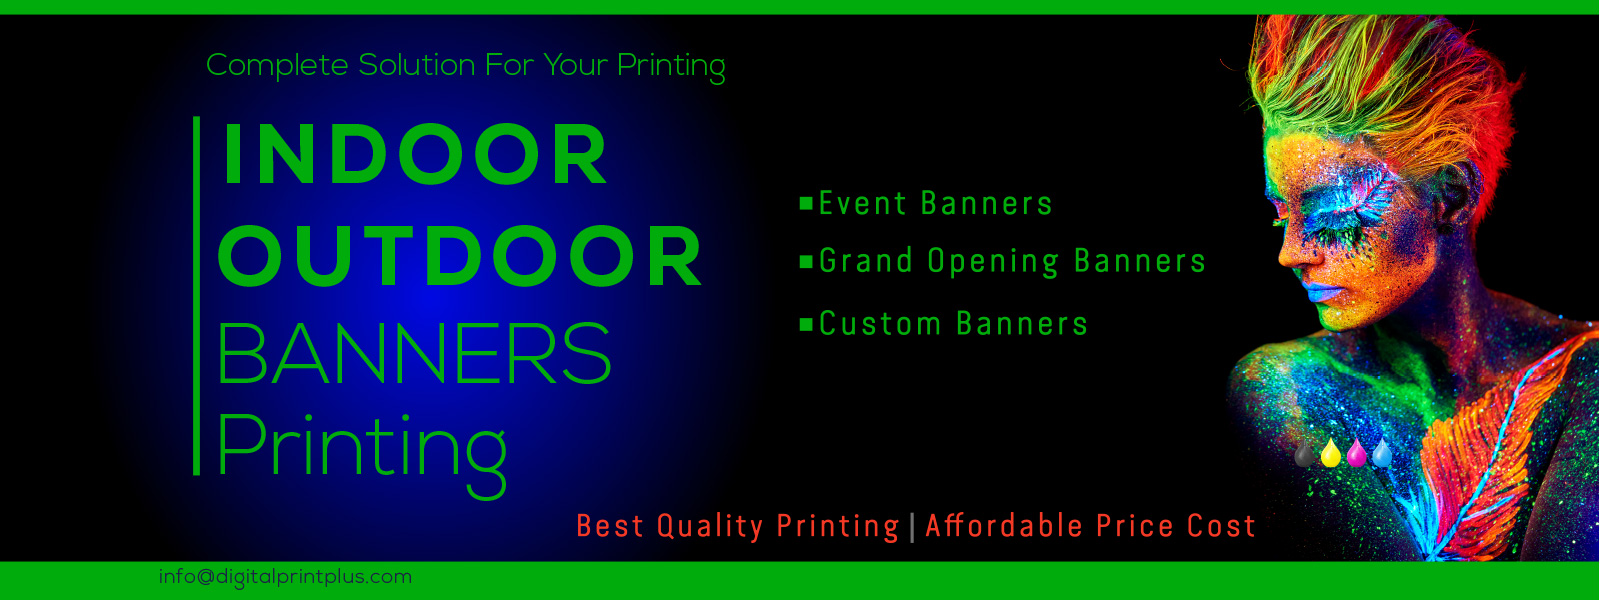 Indoor Outdoor Banner Printing